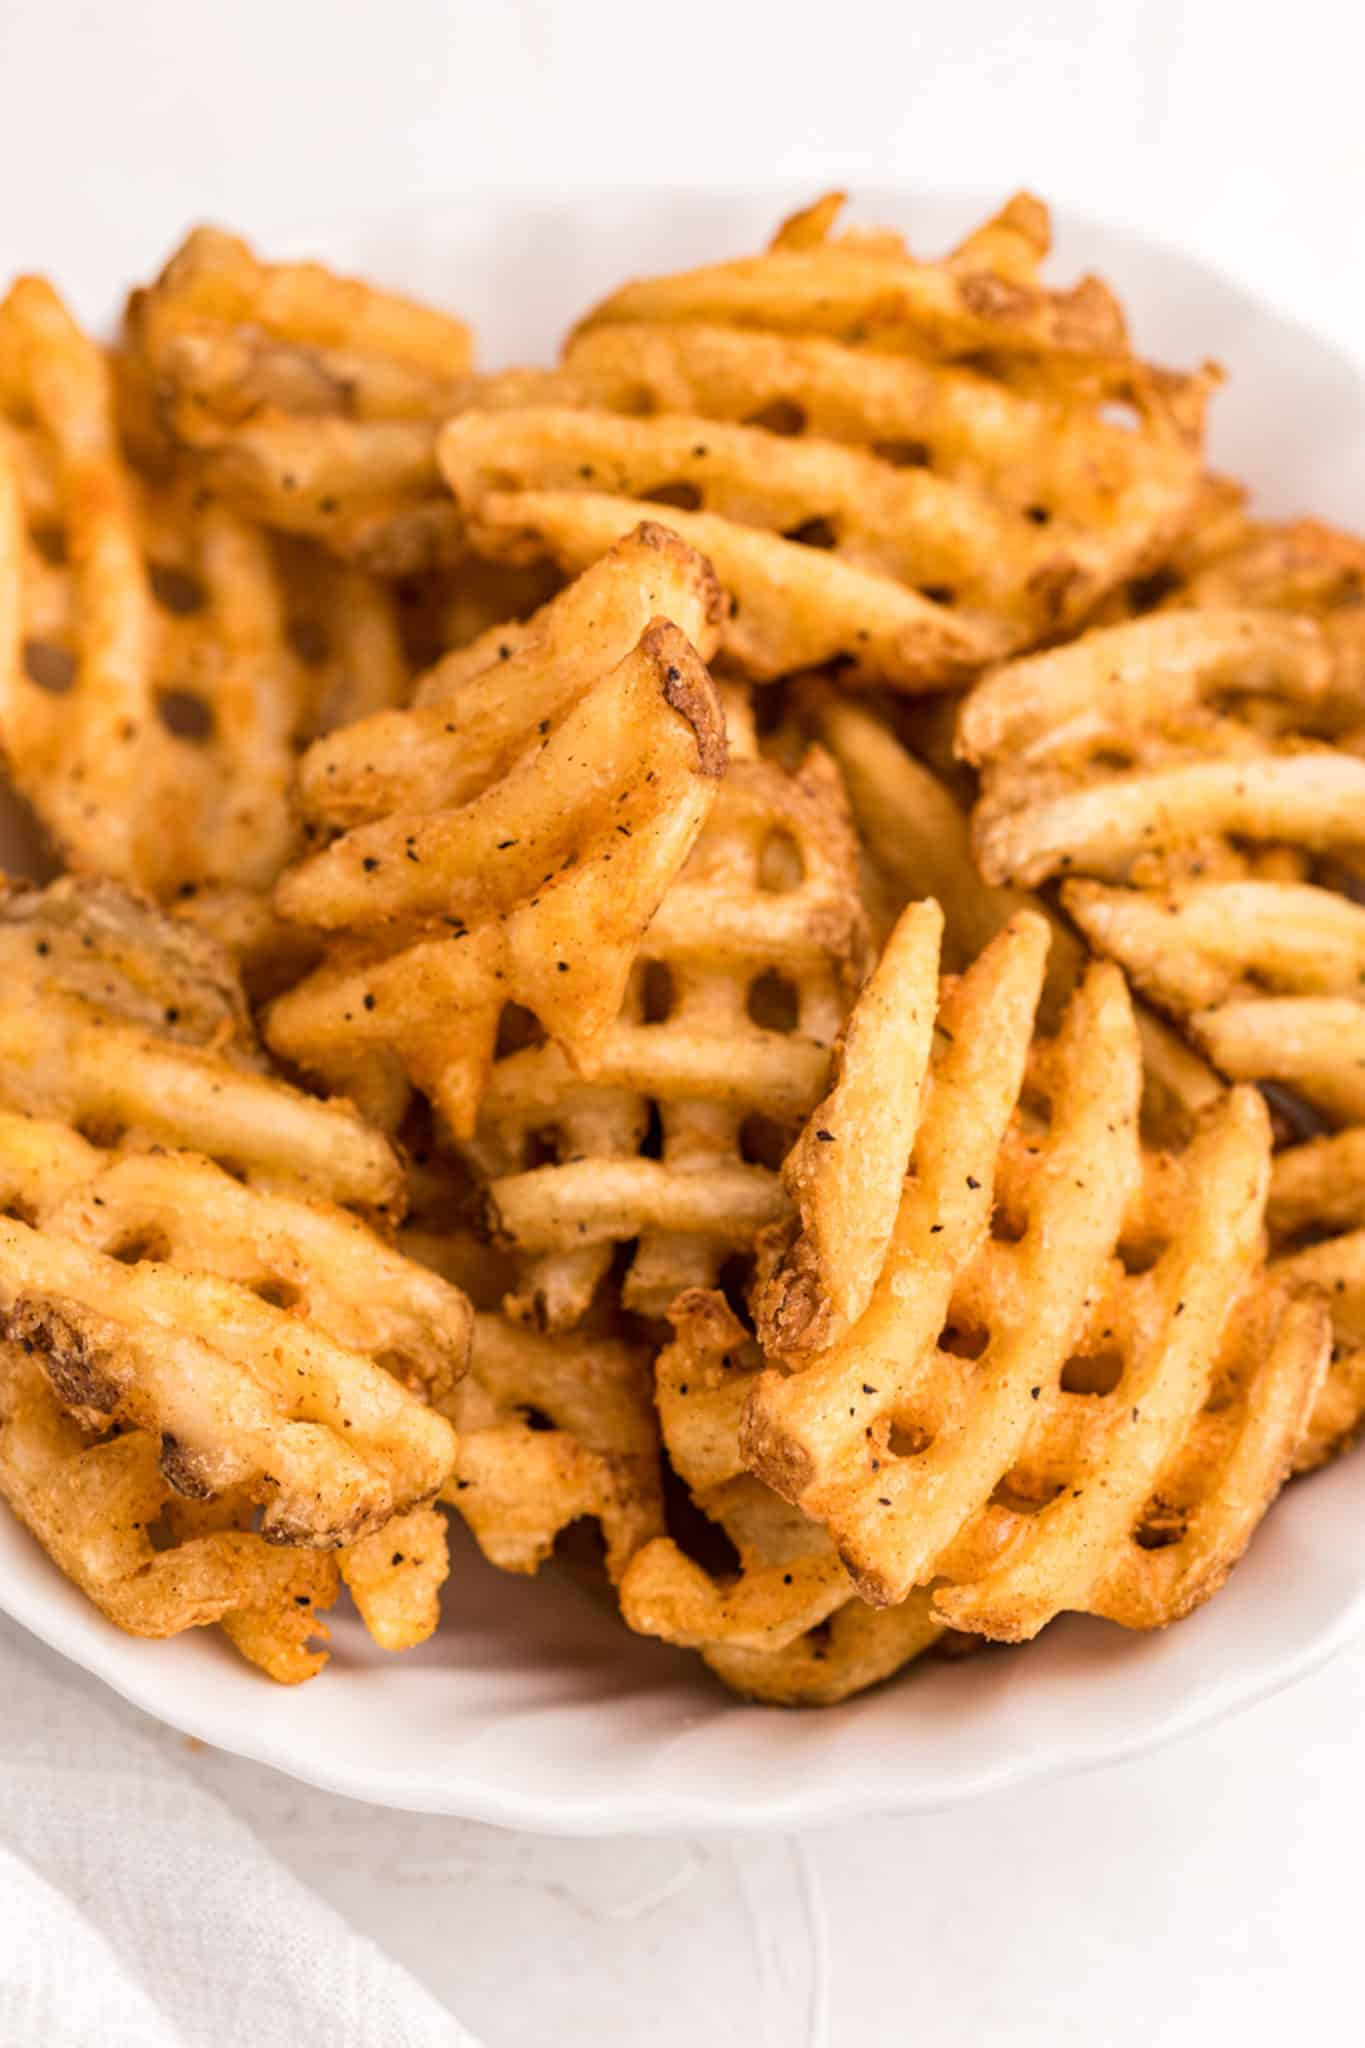 crispy waffle fries served in a white bowl